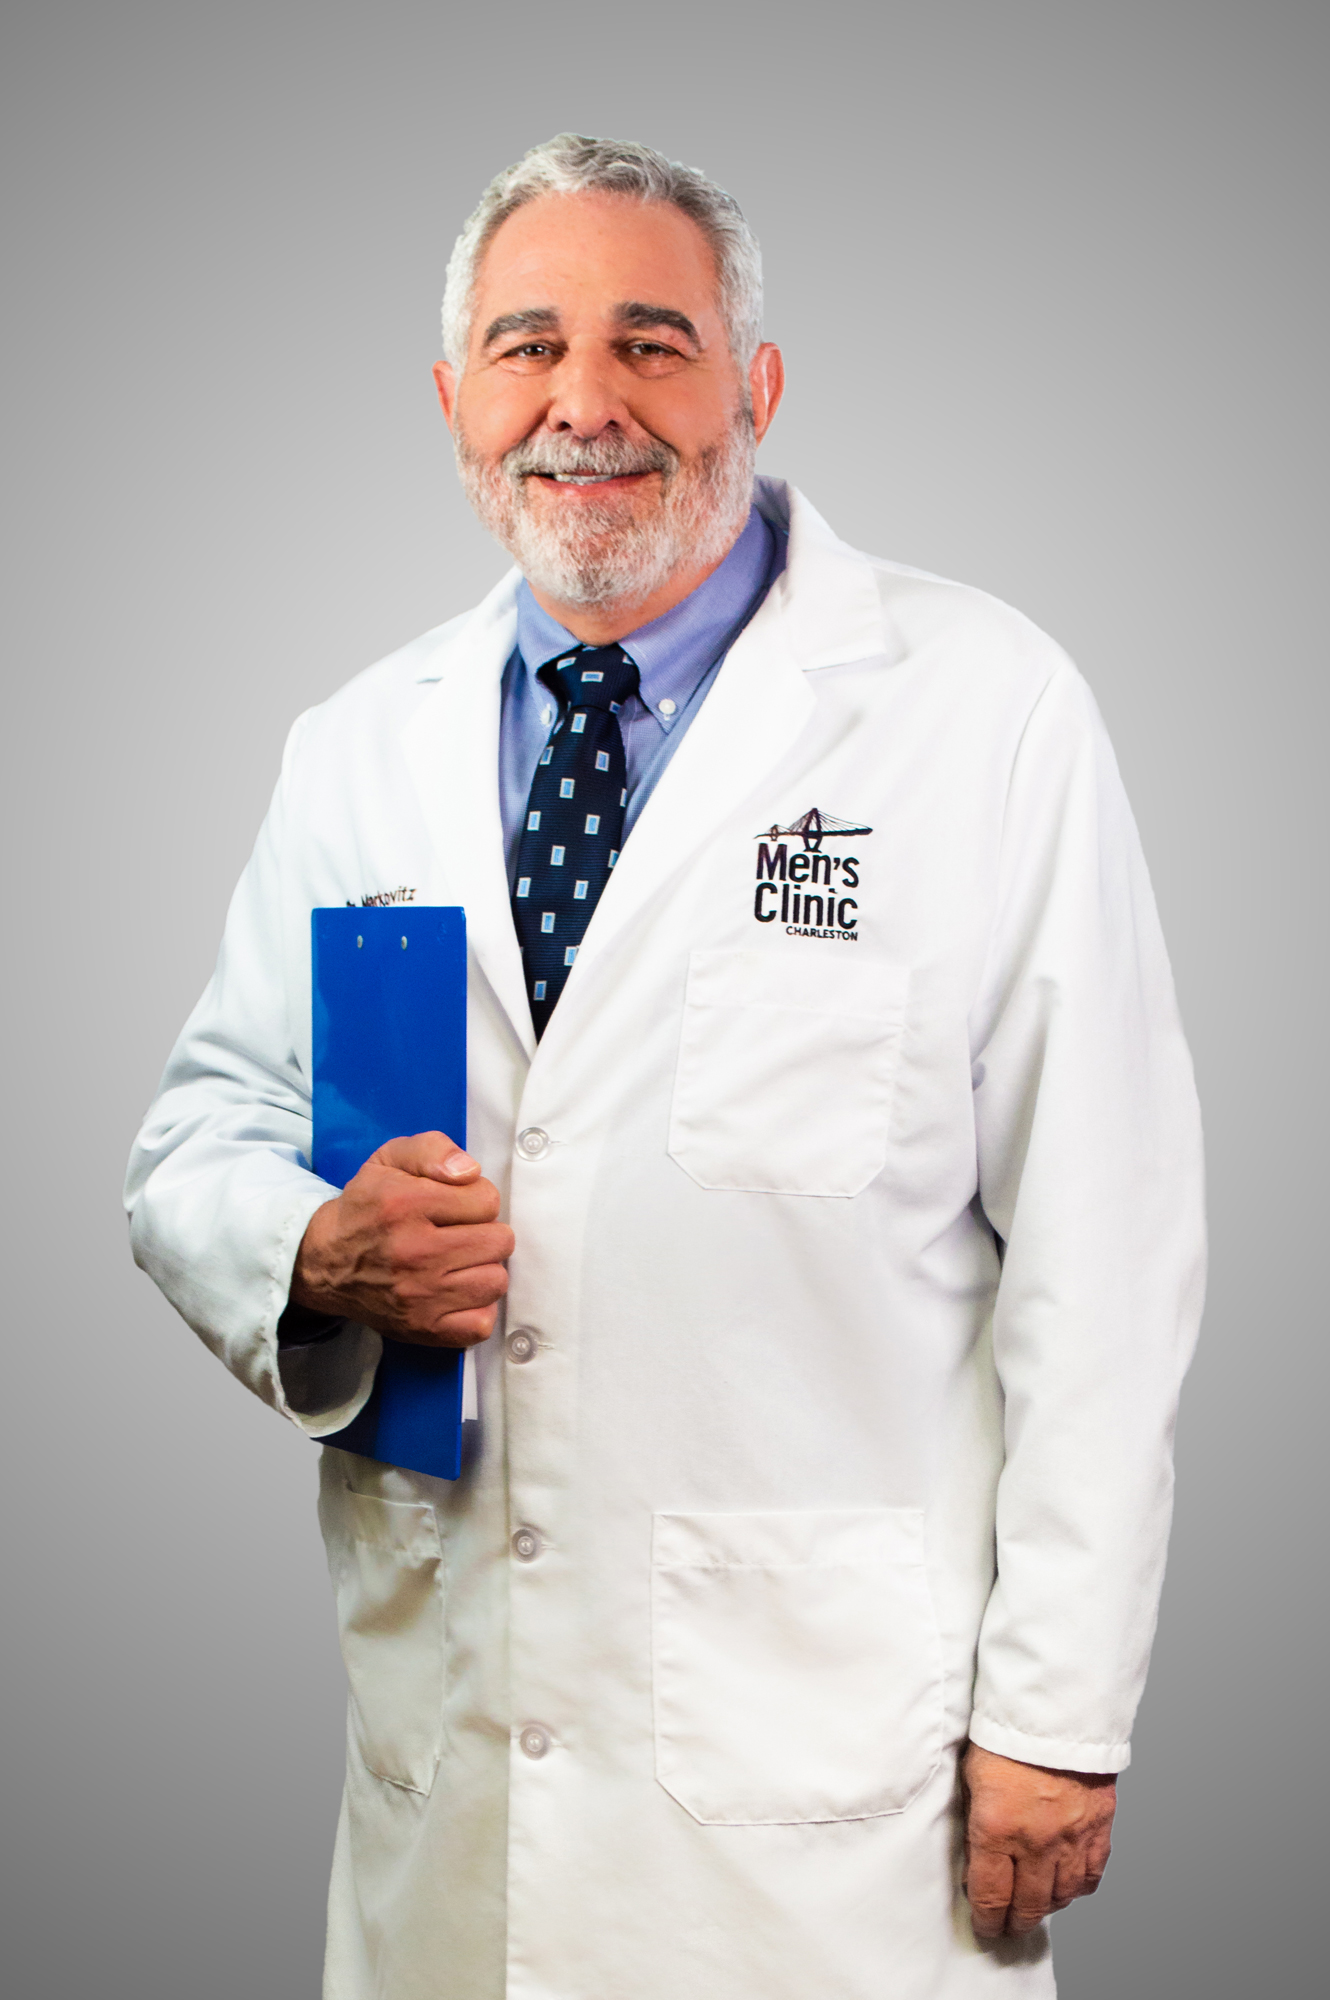 Mens sexual health physicians